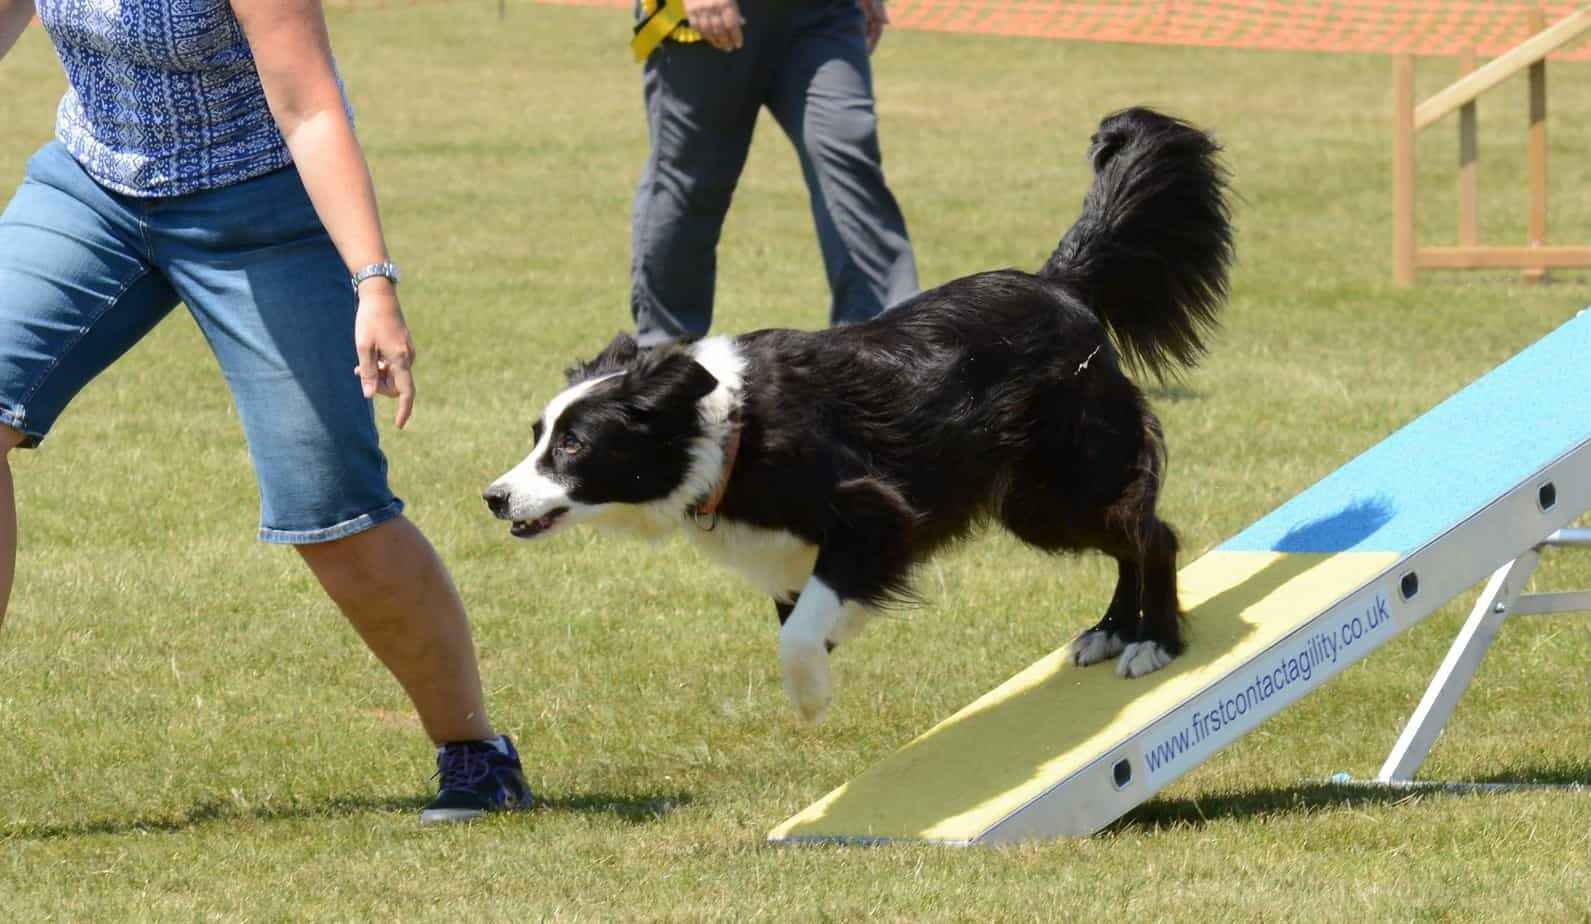 Exercises For Your Dog